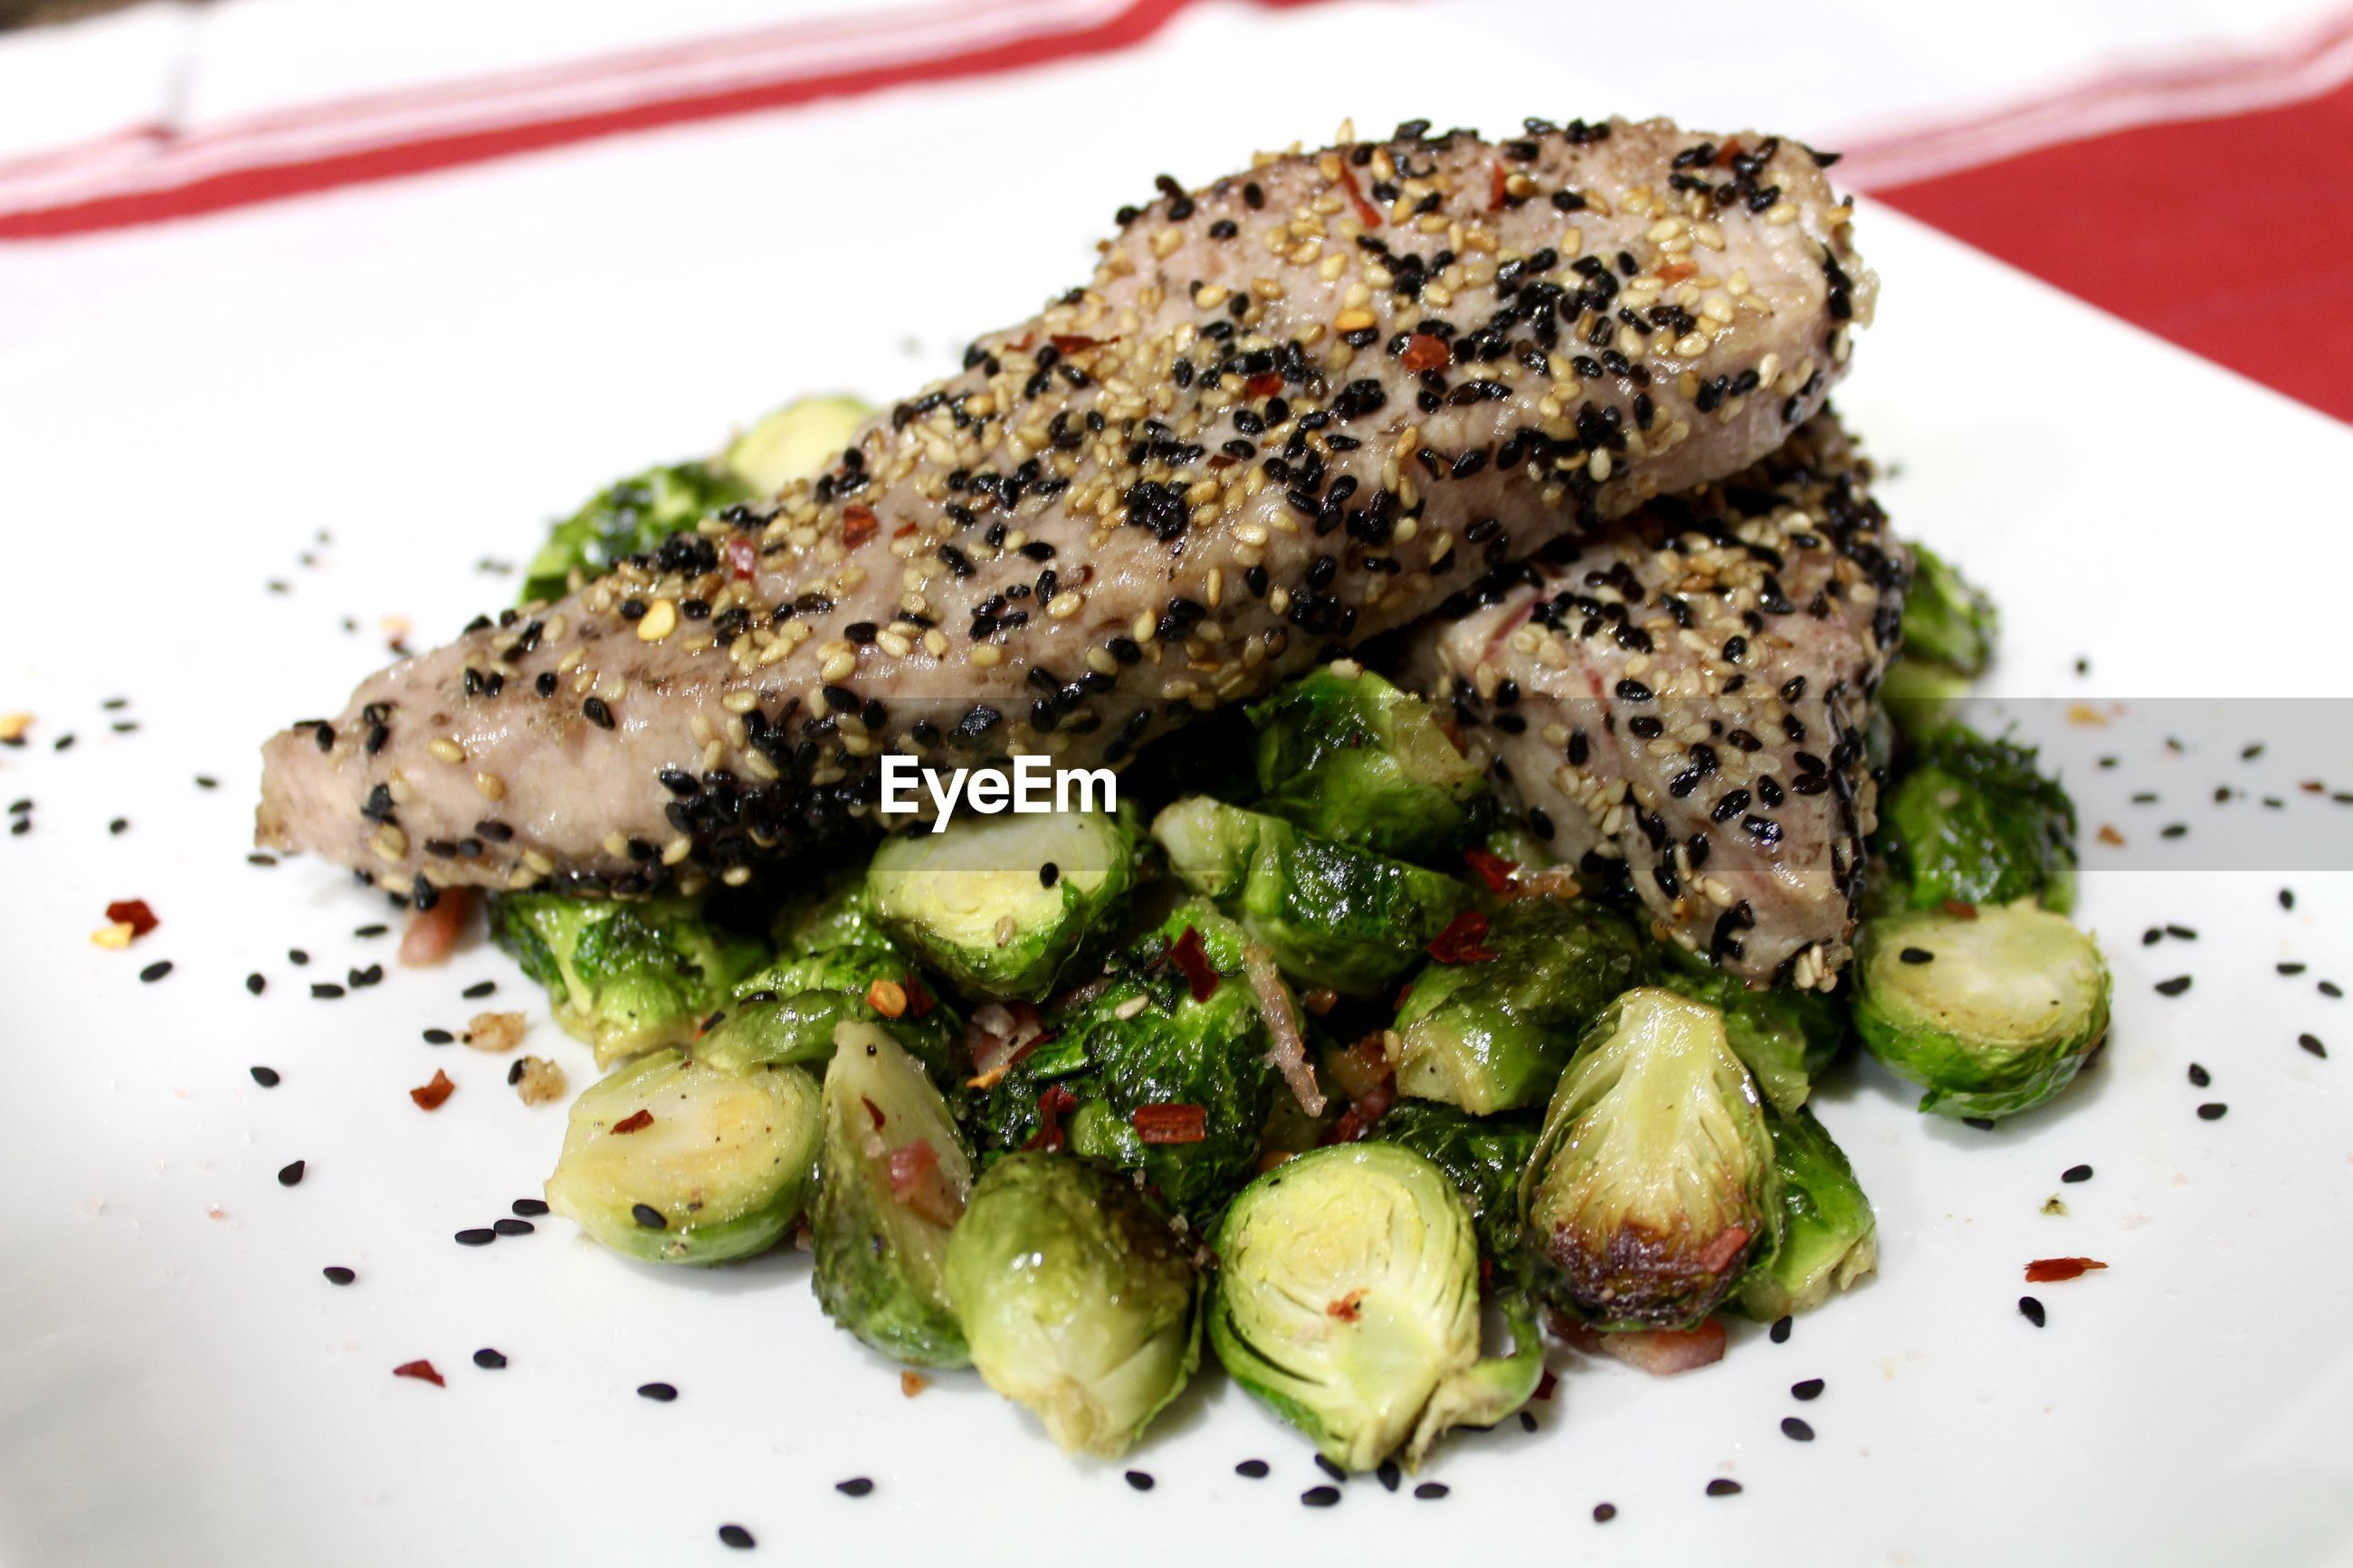 Close-up of tuna and brussels sprouts served in plate